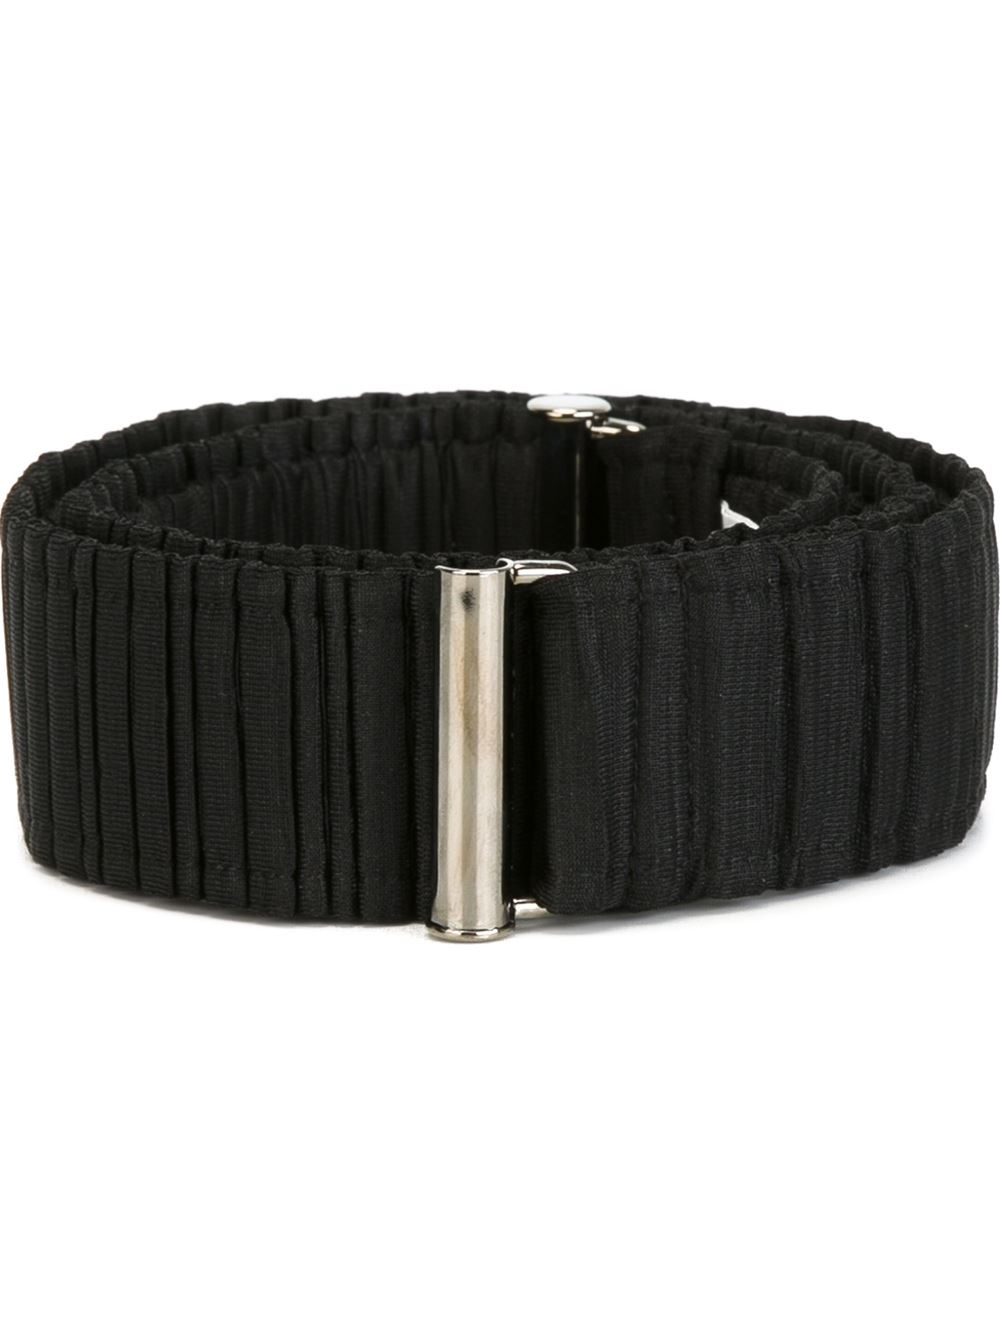 Small Leather Goods - Belts Issey Miyake T79bv3Z